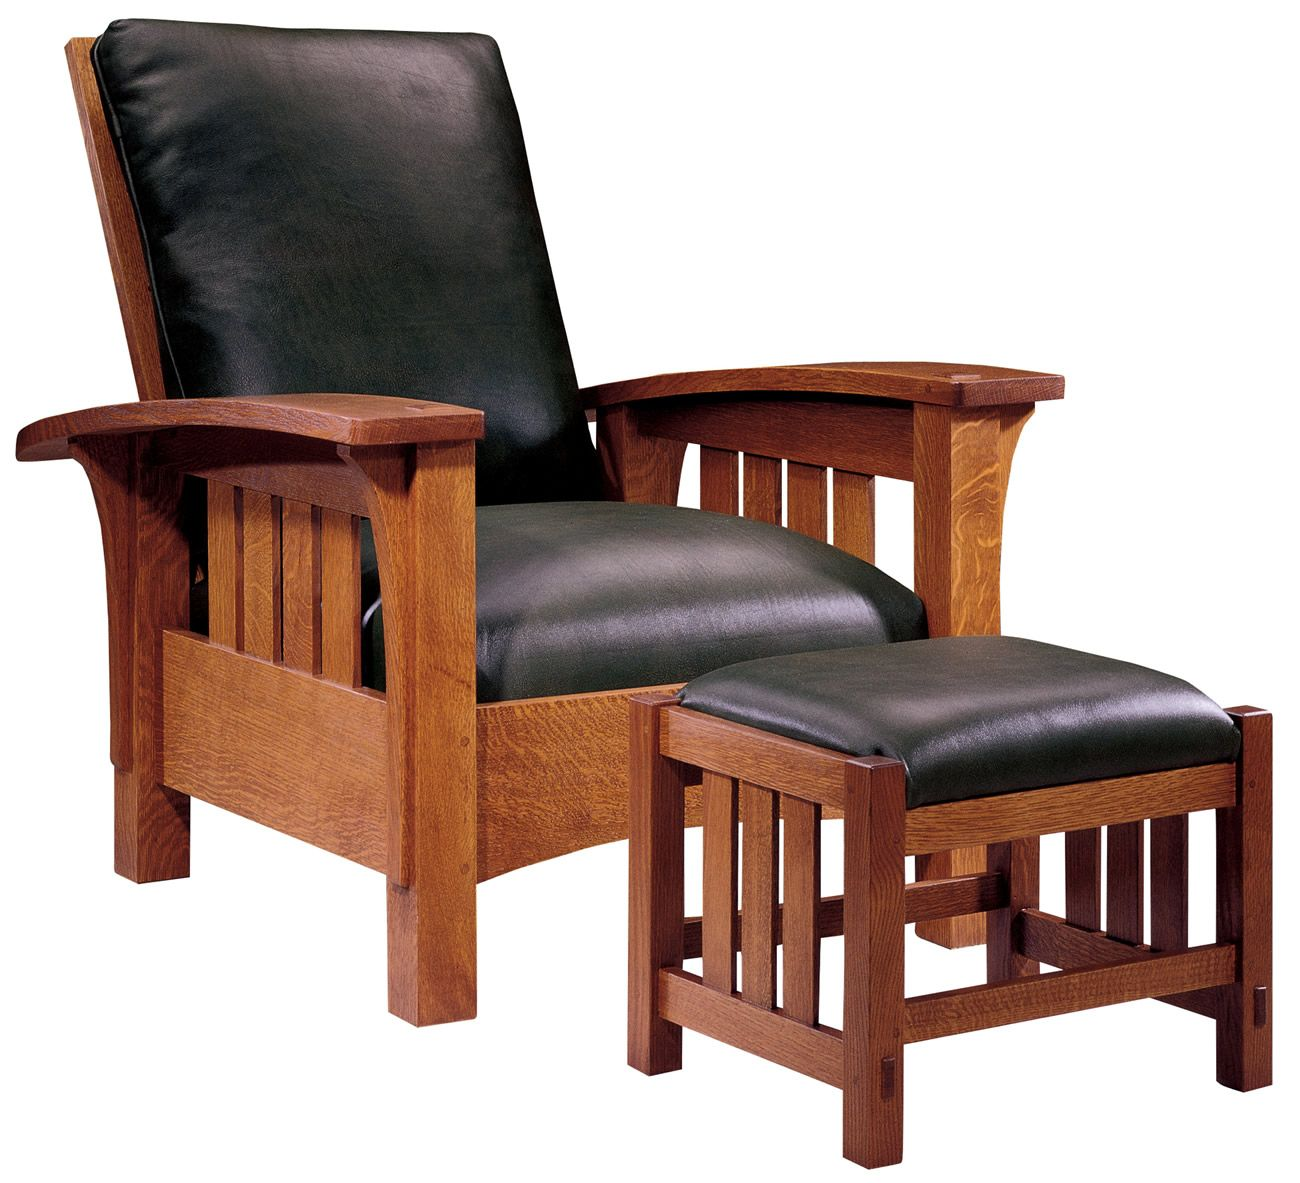 Mission Chairs Stickley Furniture Classic Bow Arm Morris Chair And Ottoman